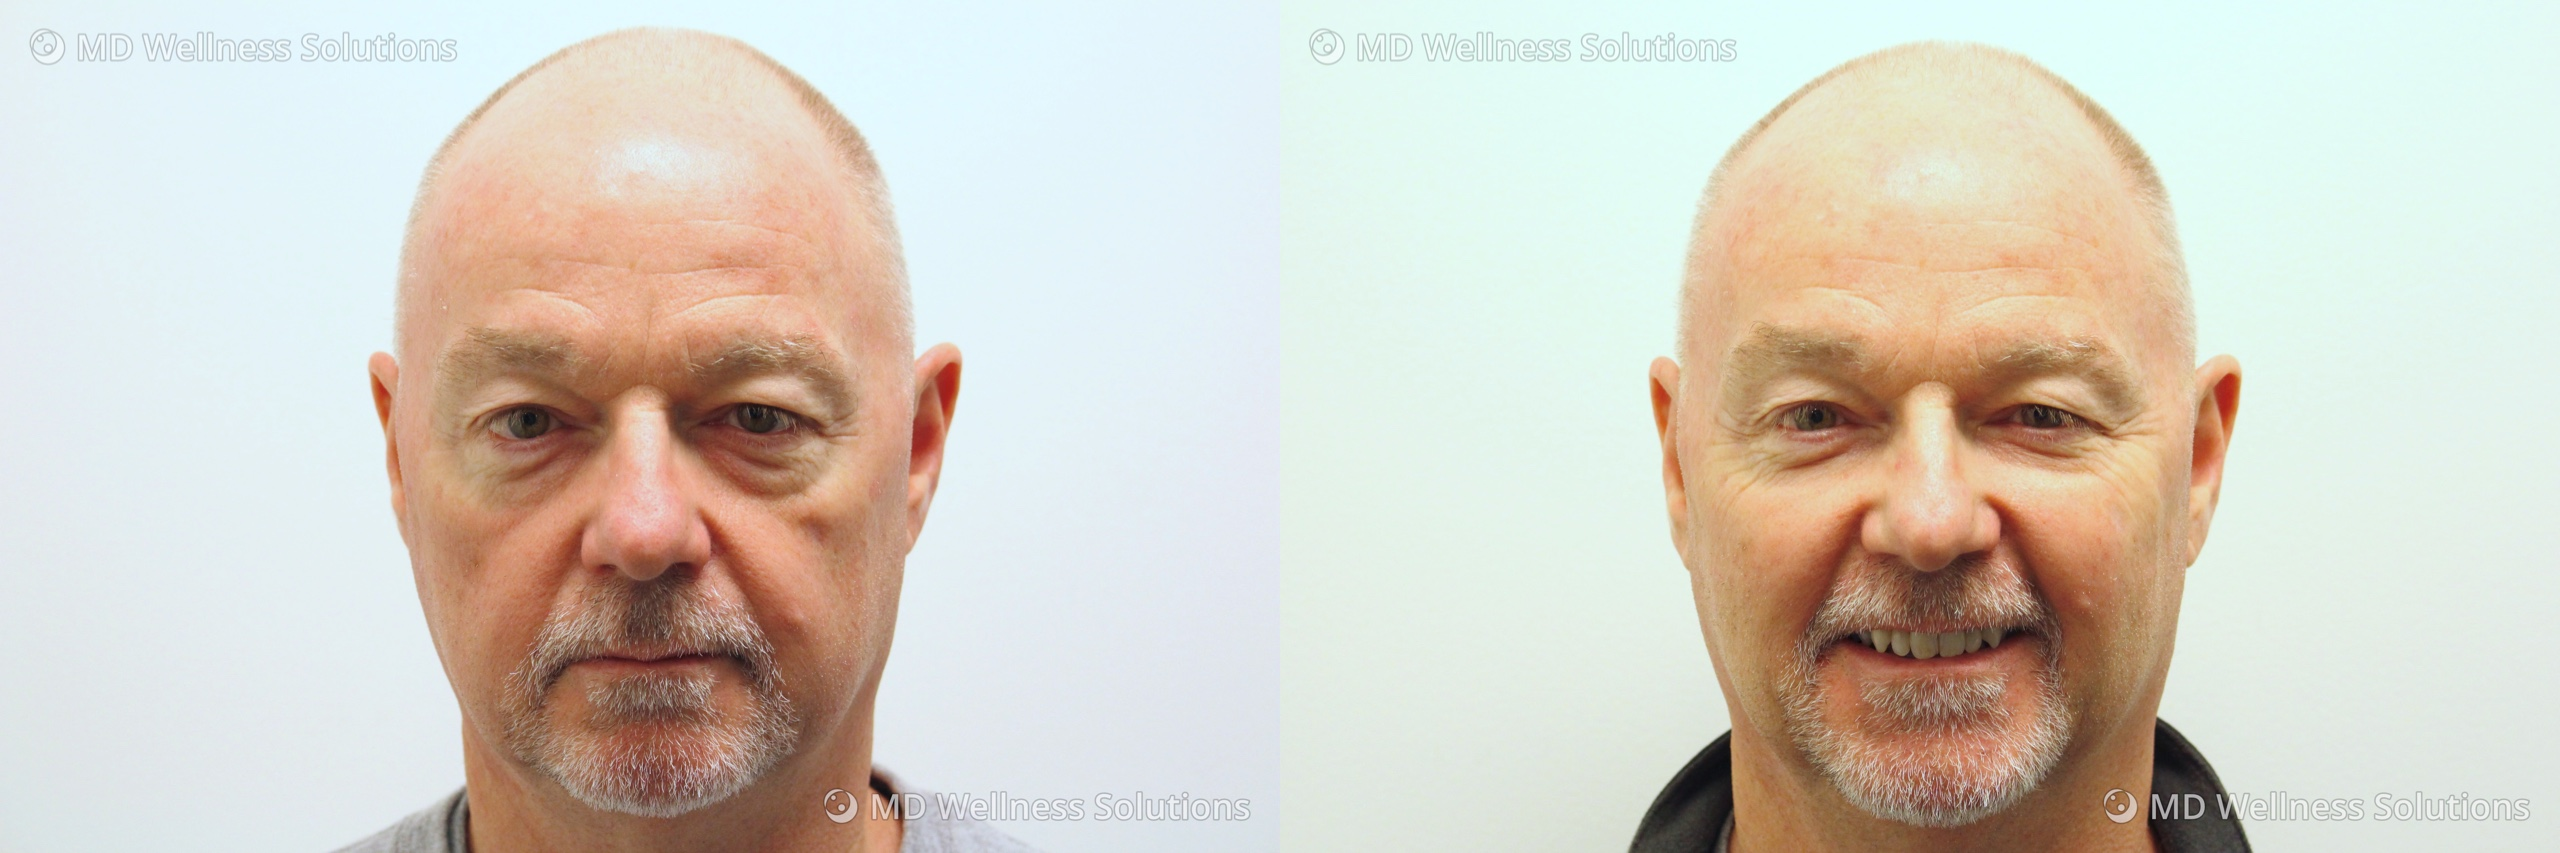 55-64 year old man before and after dermal filler treatment